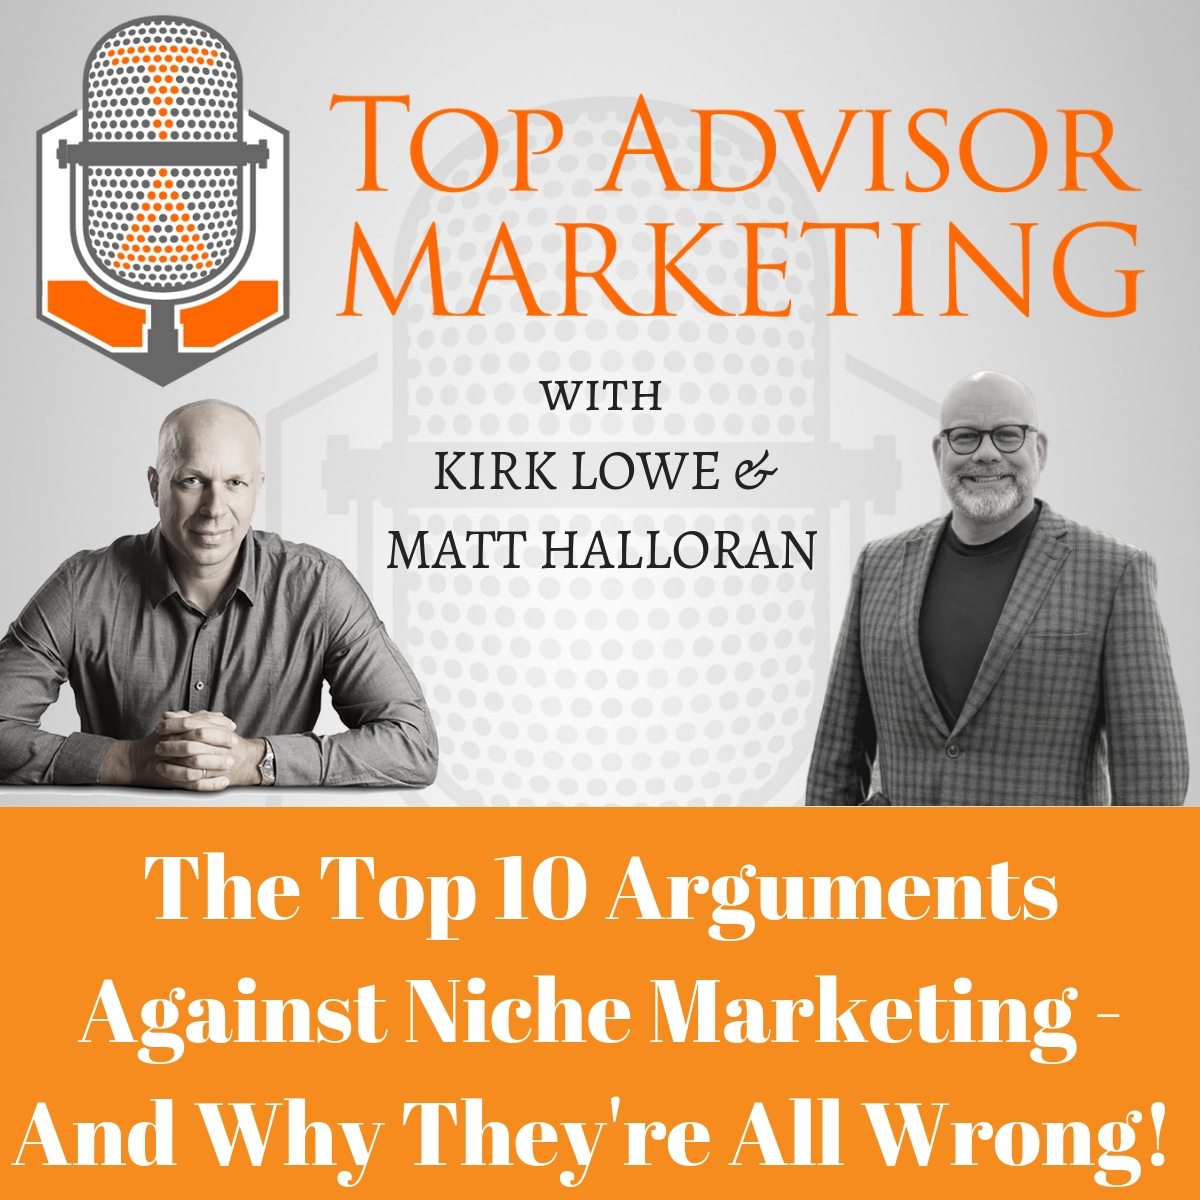 Episode 161- The Top 10 Arguments Against Niche Marketing - And Why They're All Wrong!